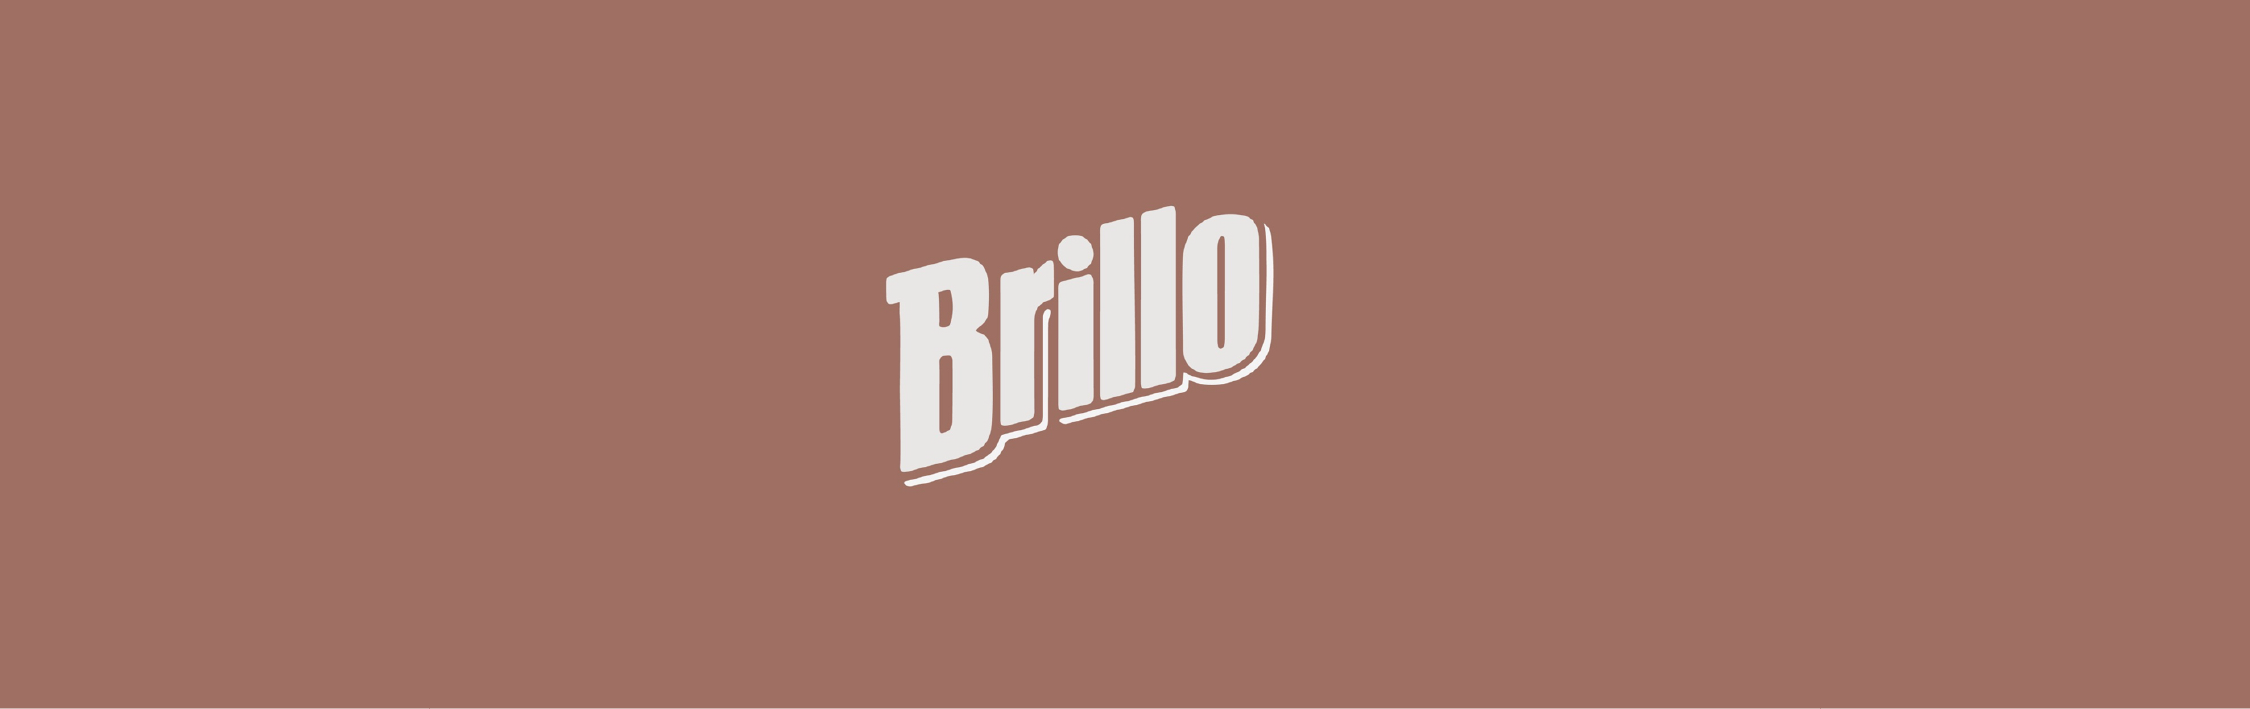 BrilloBanner-01.png